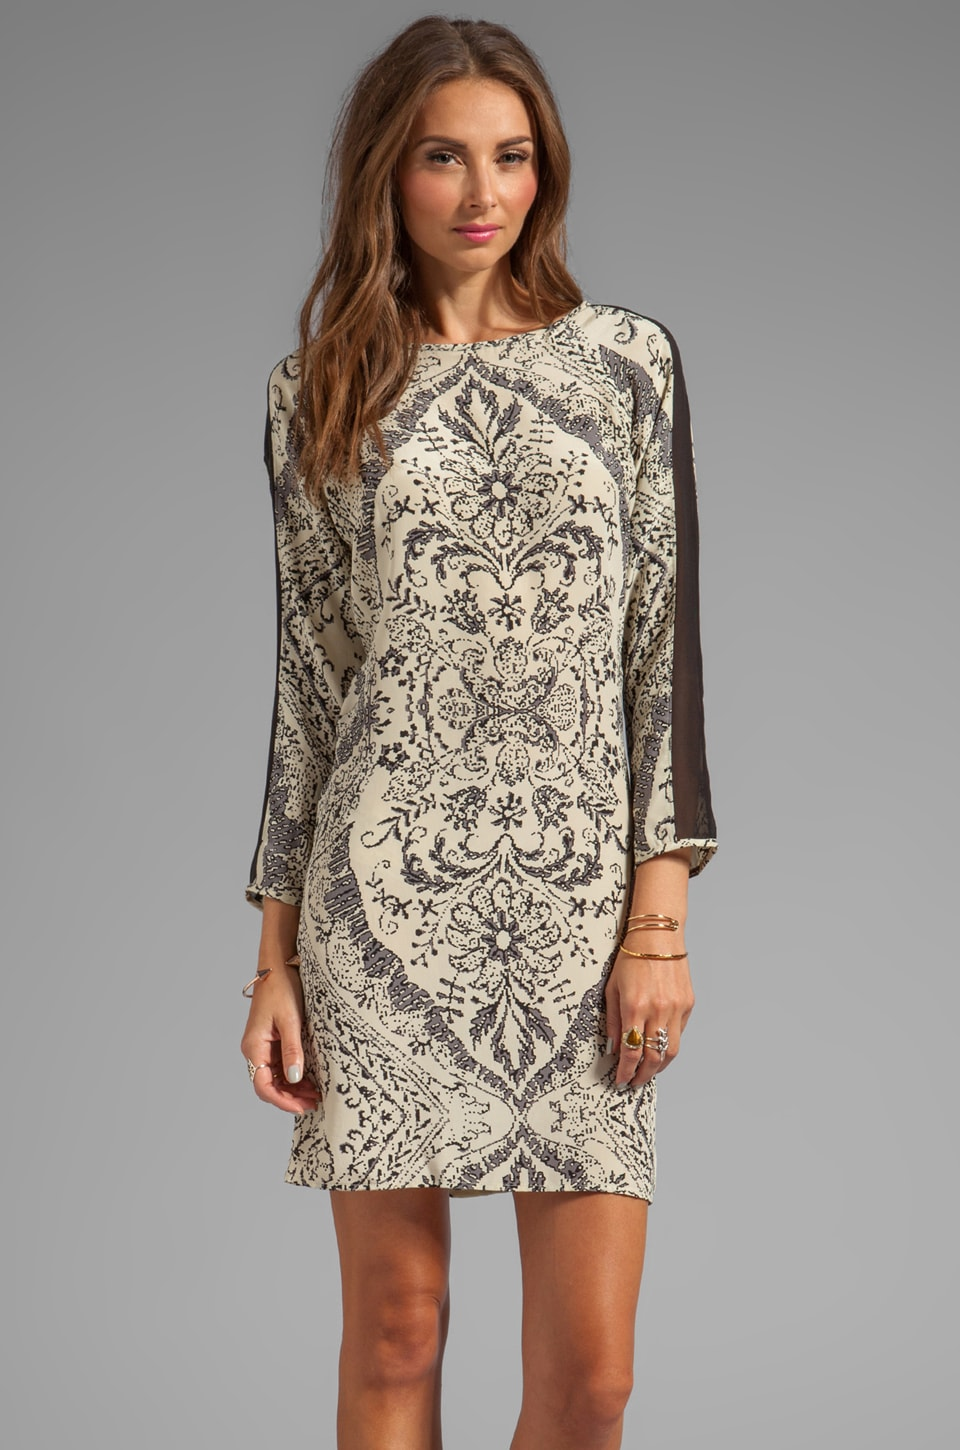 Graham & Spencer Handkerchief Print Dress in Multi